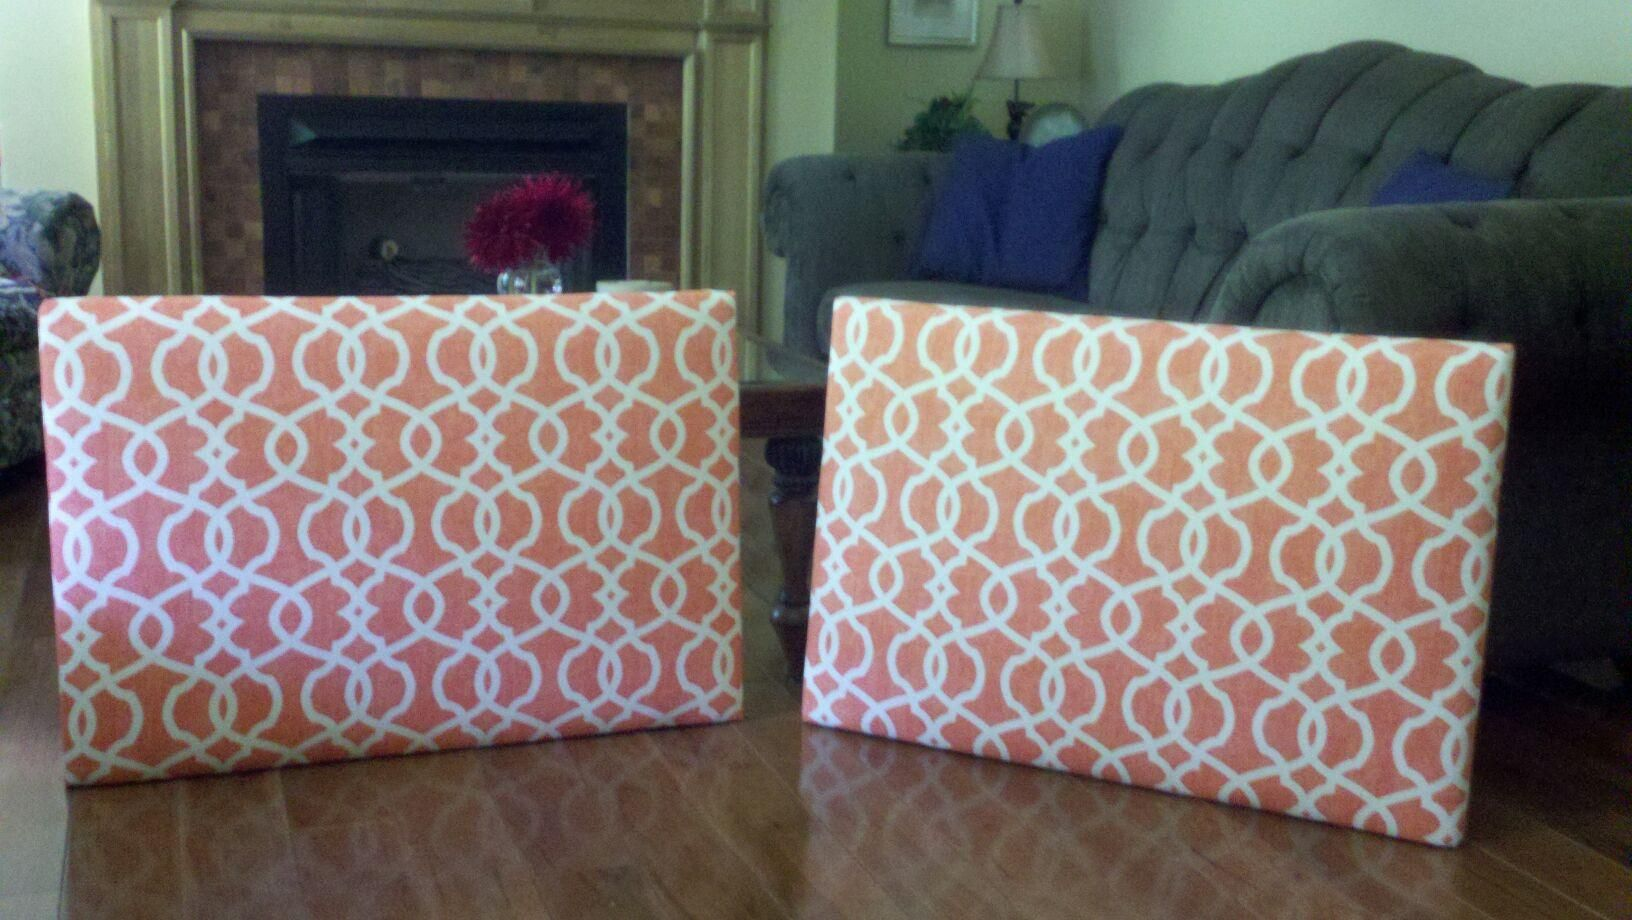 Diy headboards for college dorm cheap canvas art from for How to make a cheap headboard